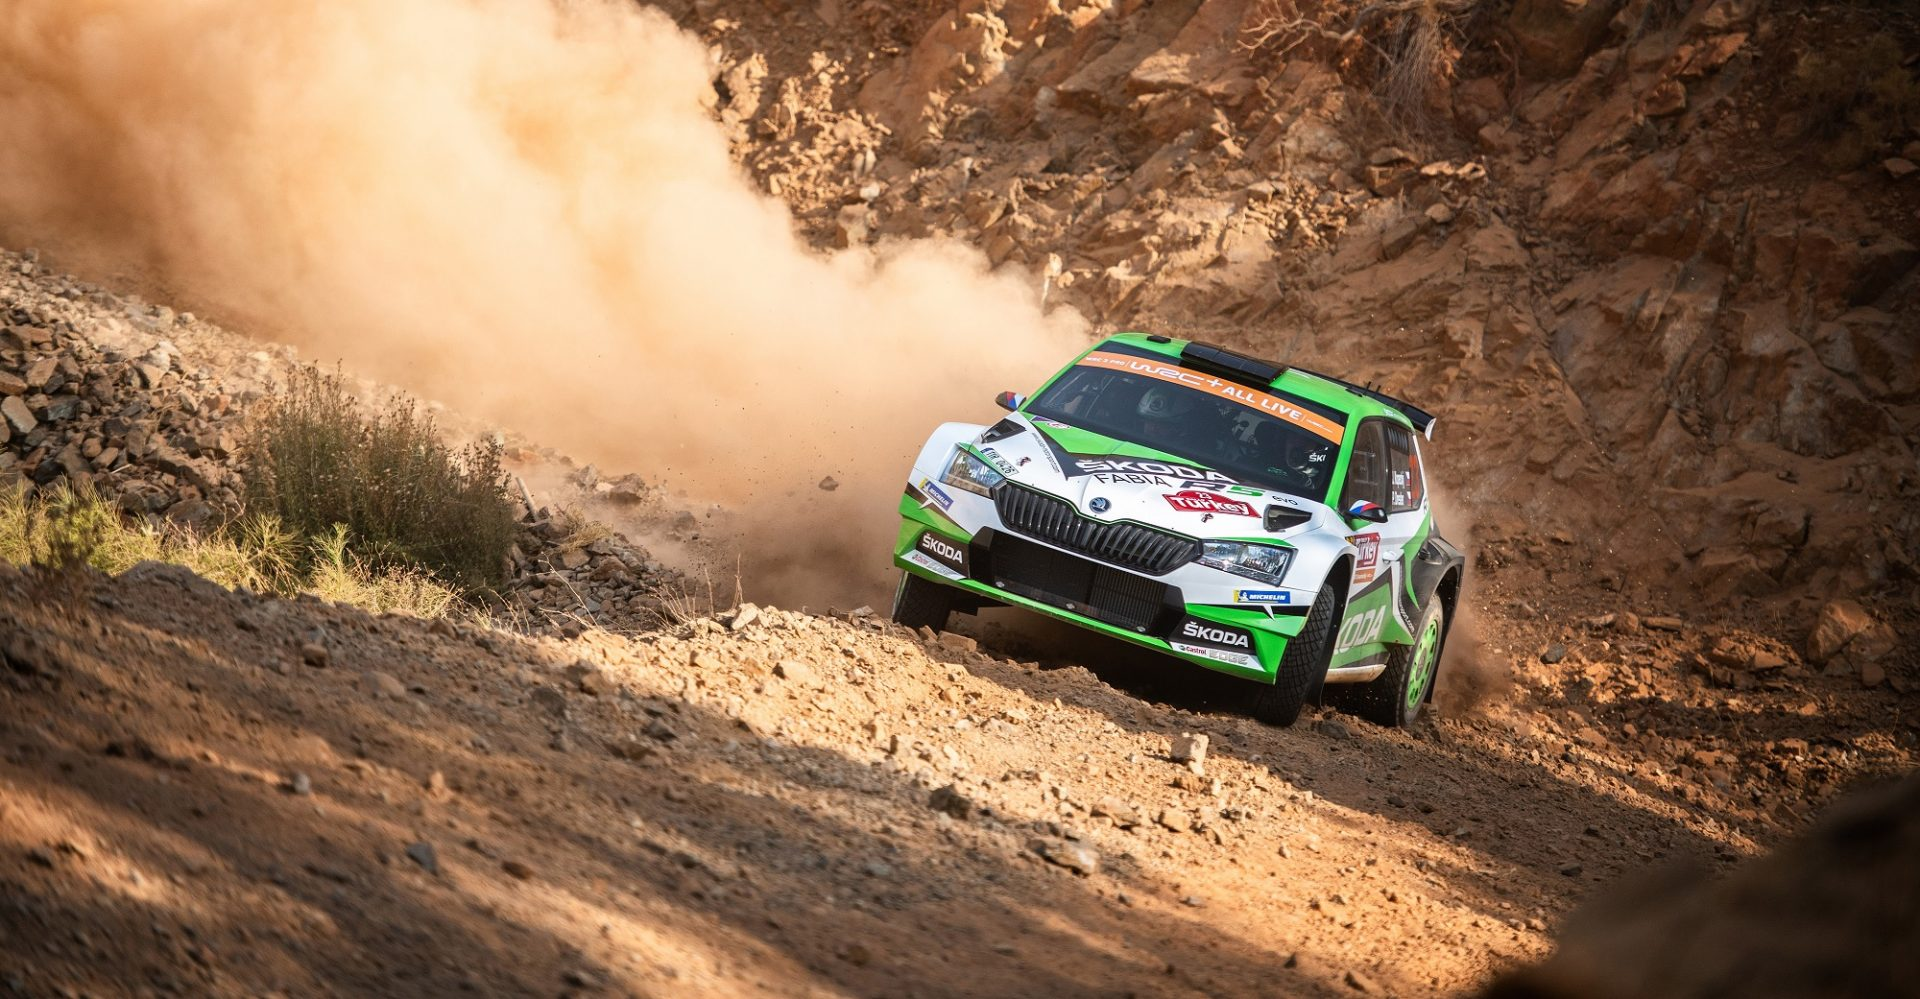 ŠKODA FABIA R5 Scored Its Thousandth Victory Last Year